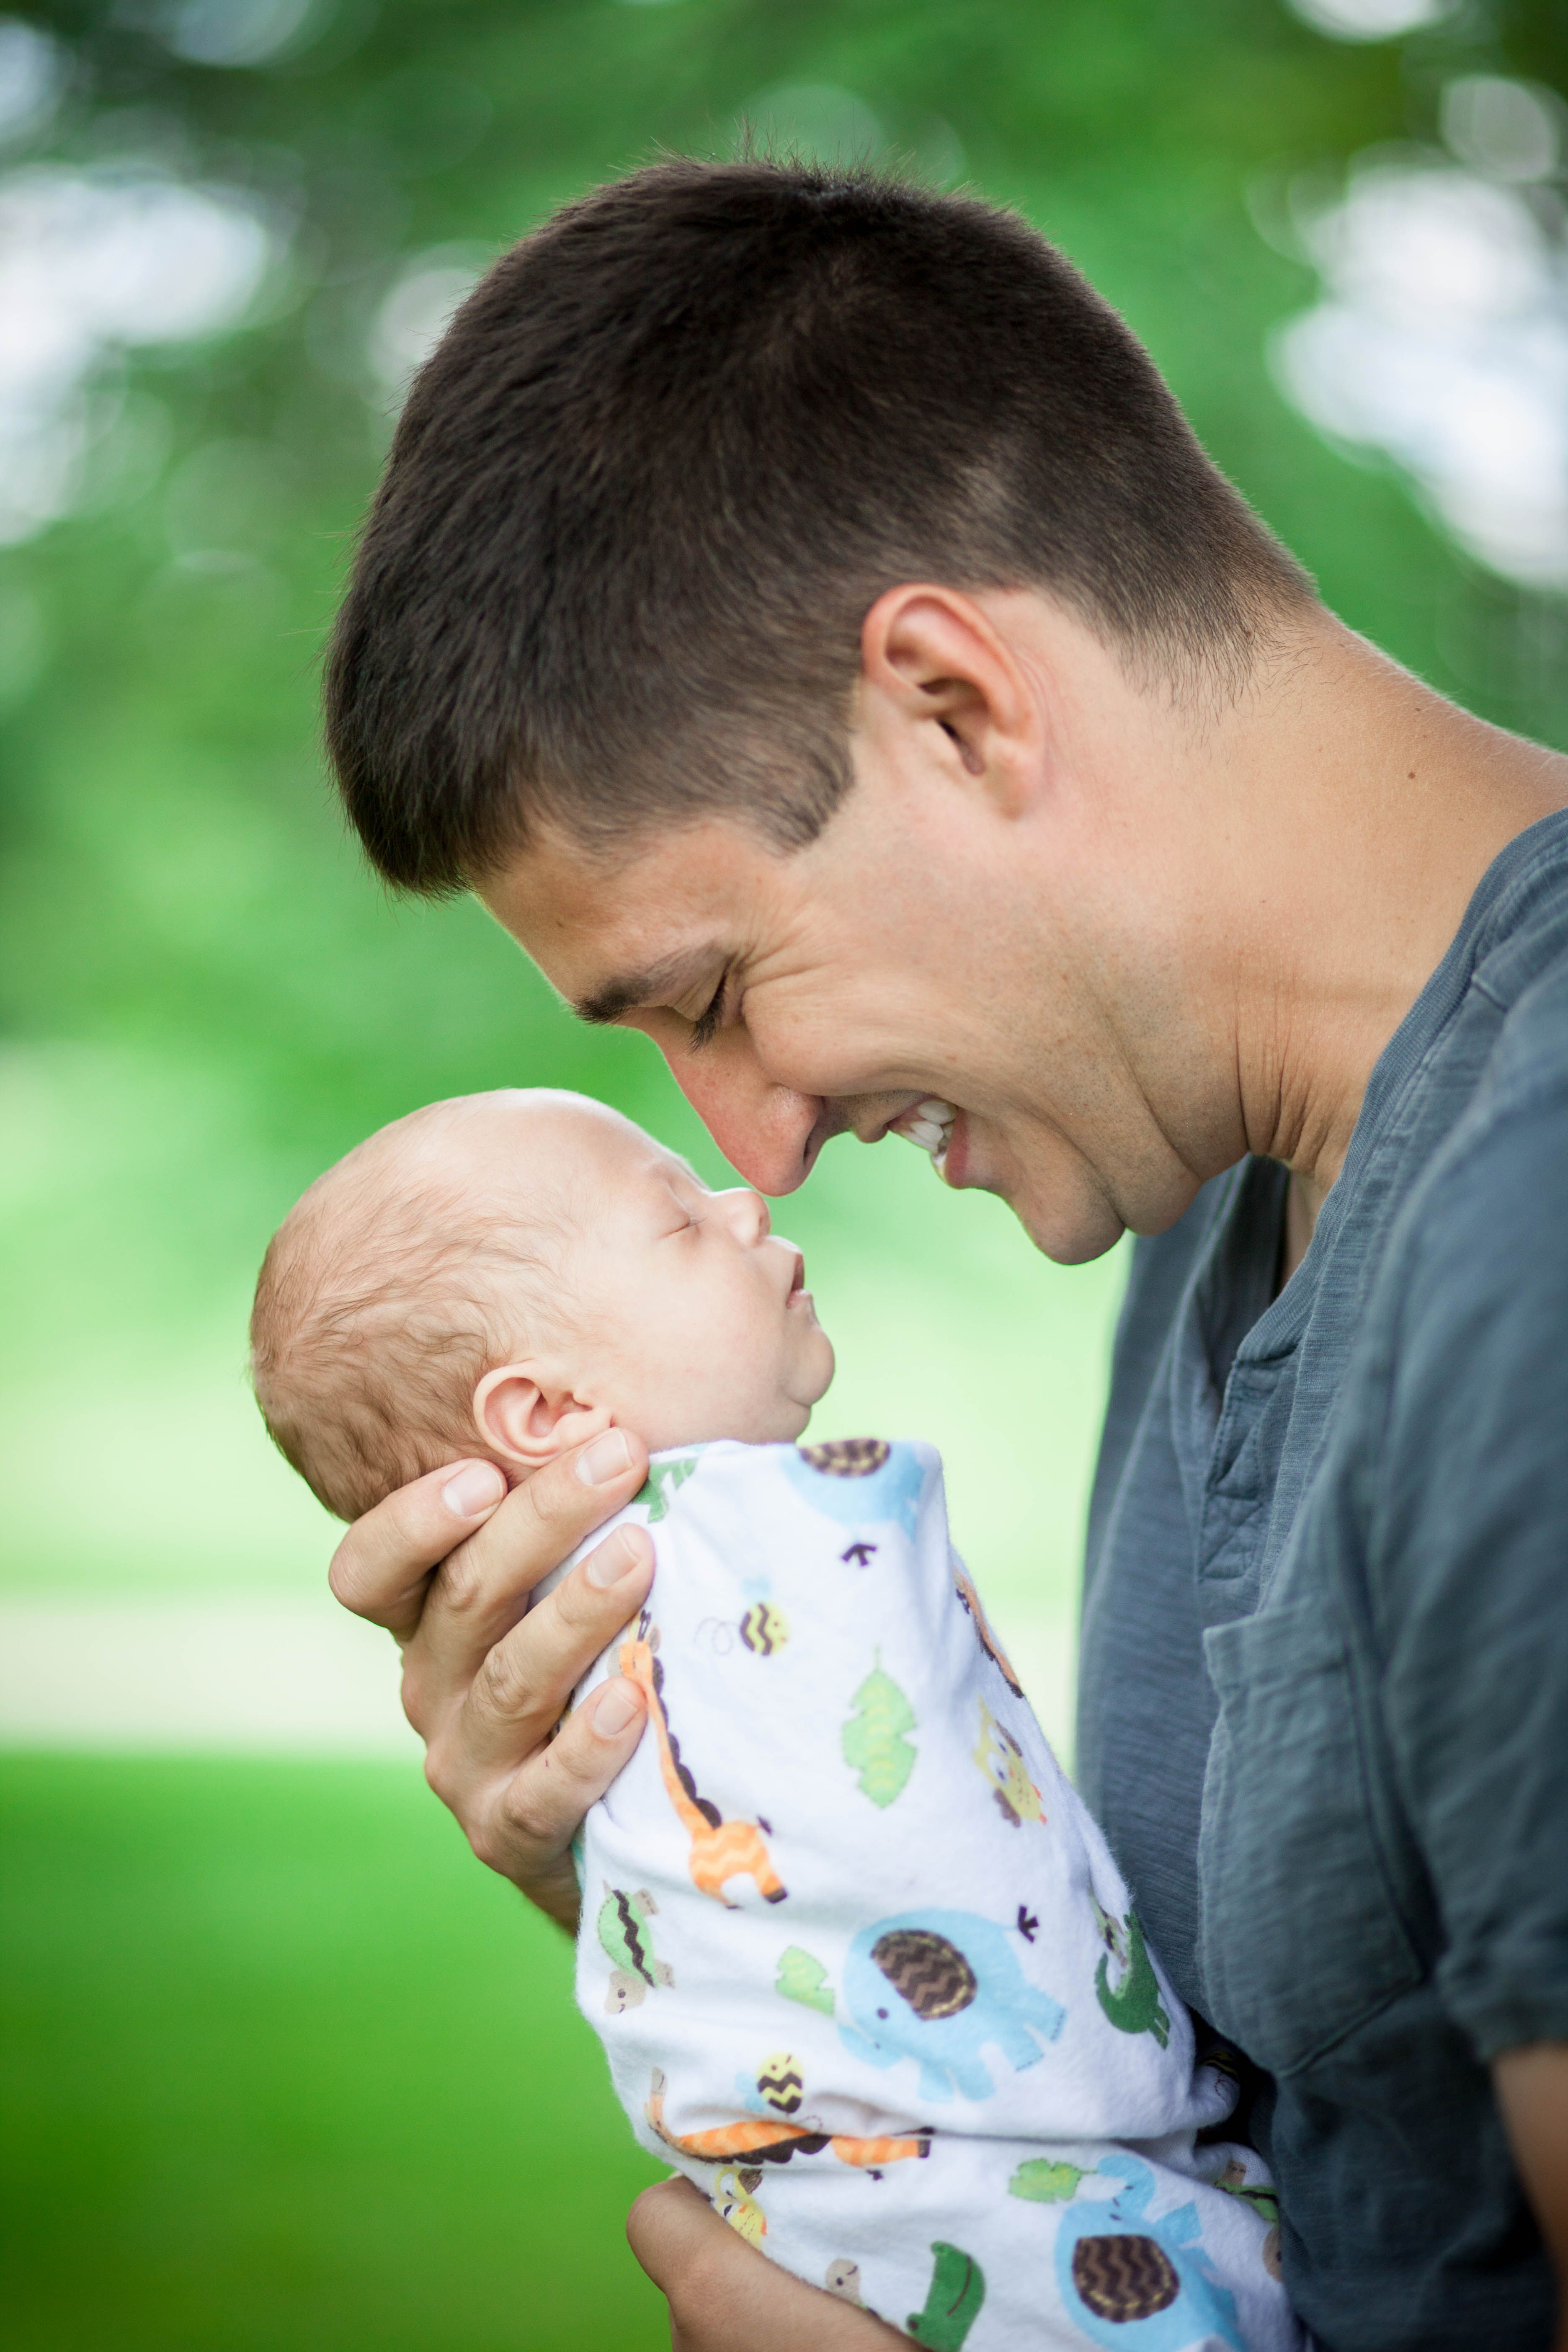 Fatherson, newborn photography, premature baby first